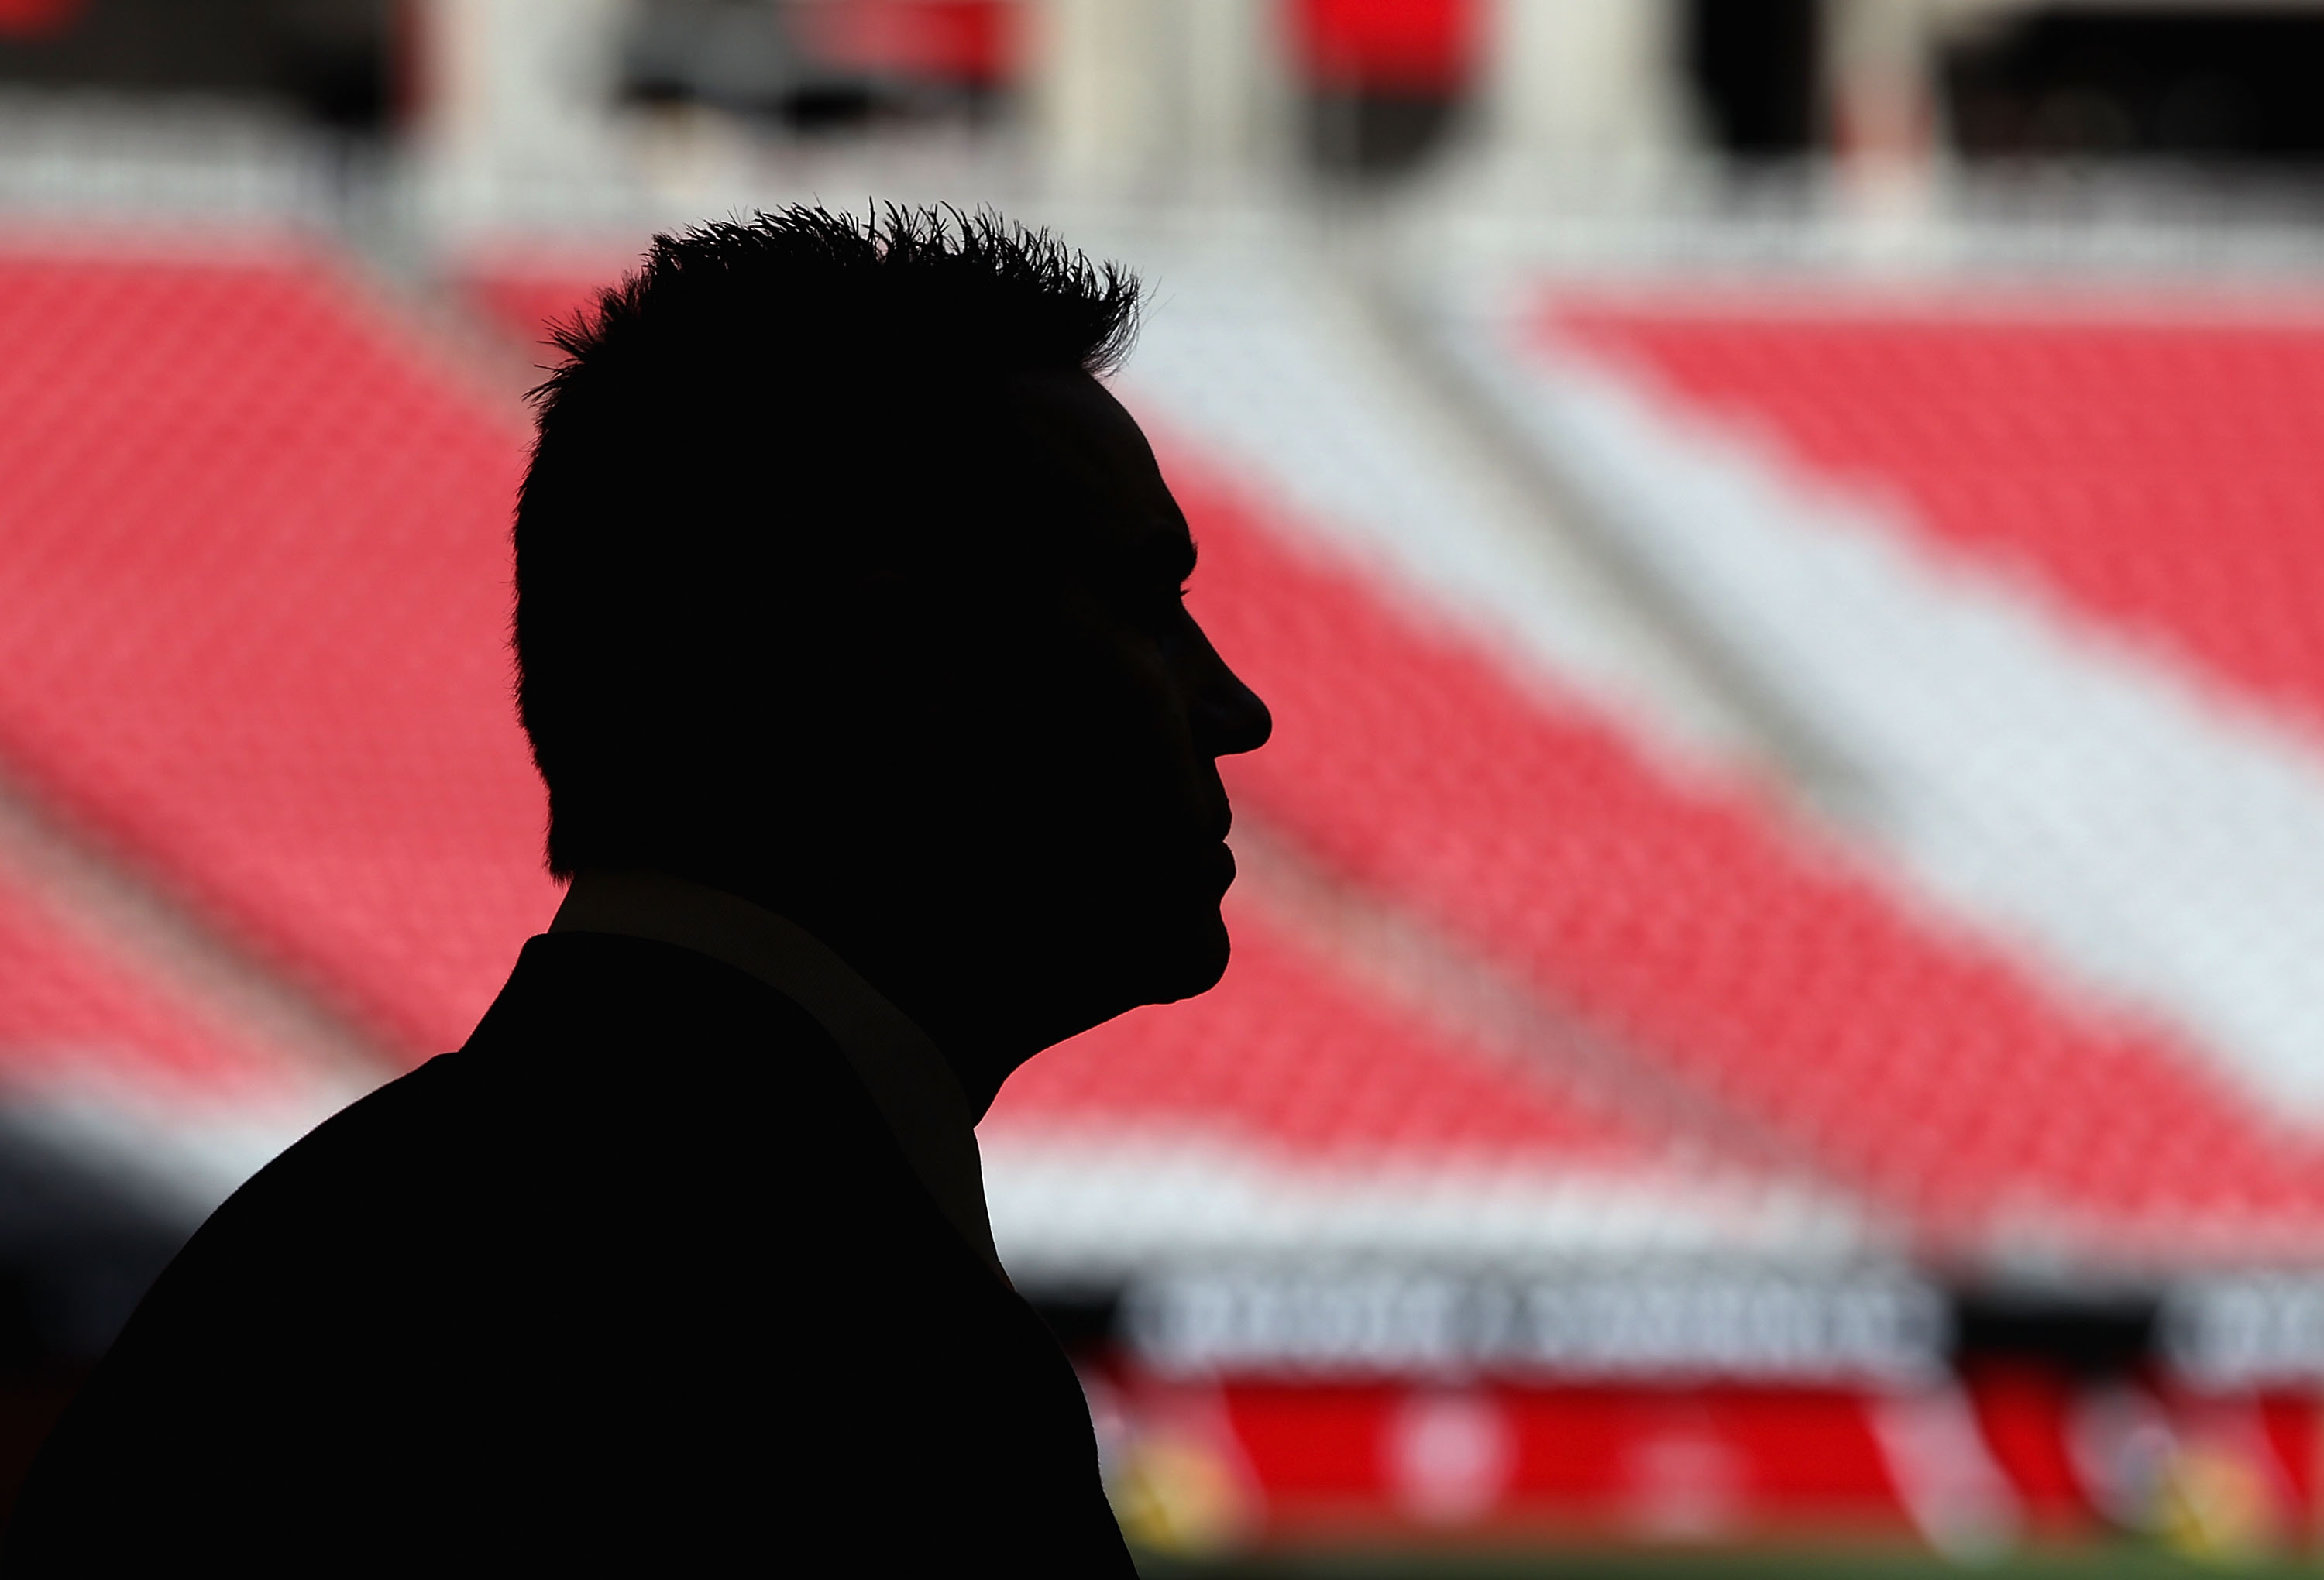 GLENDALE, AZ - DECEMBER 05:  Former NFL quarterback Kurt Warner stands on the field before the NFL game between the St. Louis Rams and the Arizona Cardinals at the University of Phoenix Stadium on December 5, 2010 in Glendale, Arizona.  (Photo by Christia